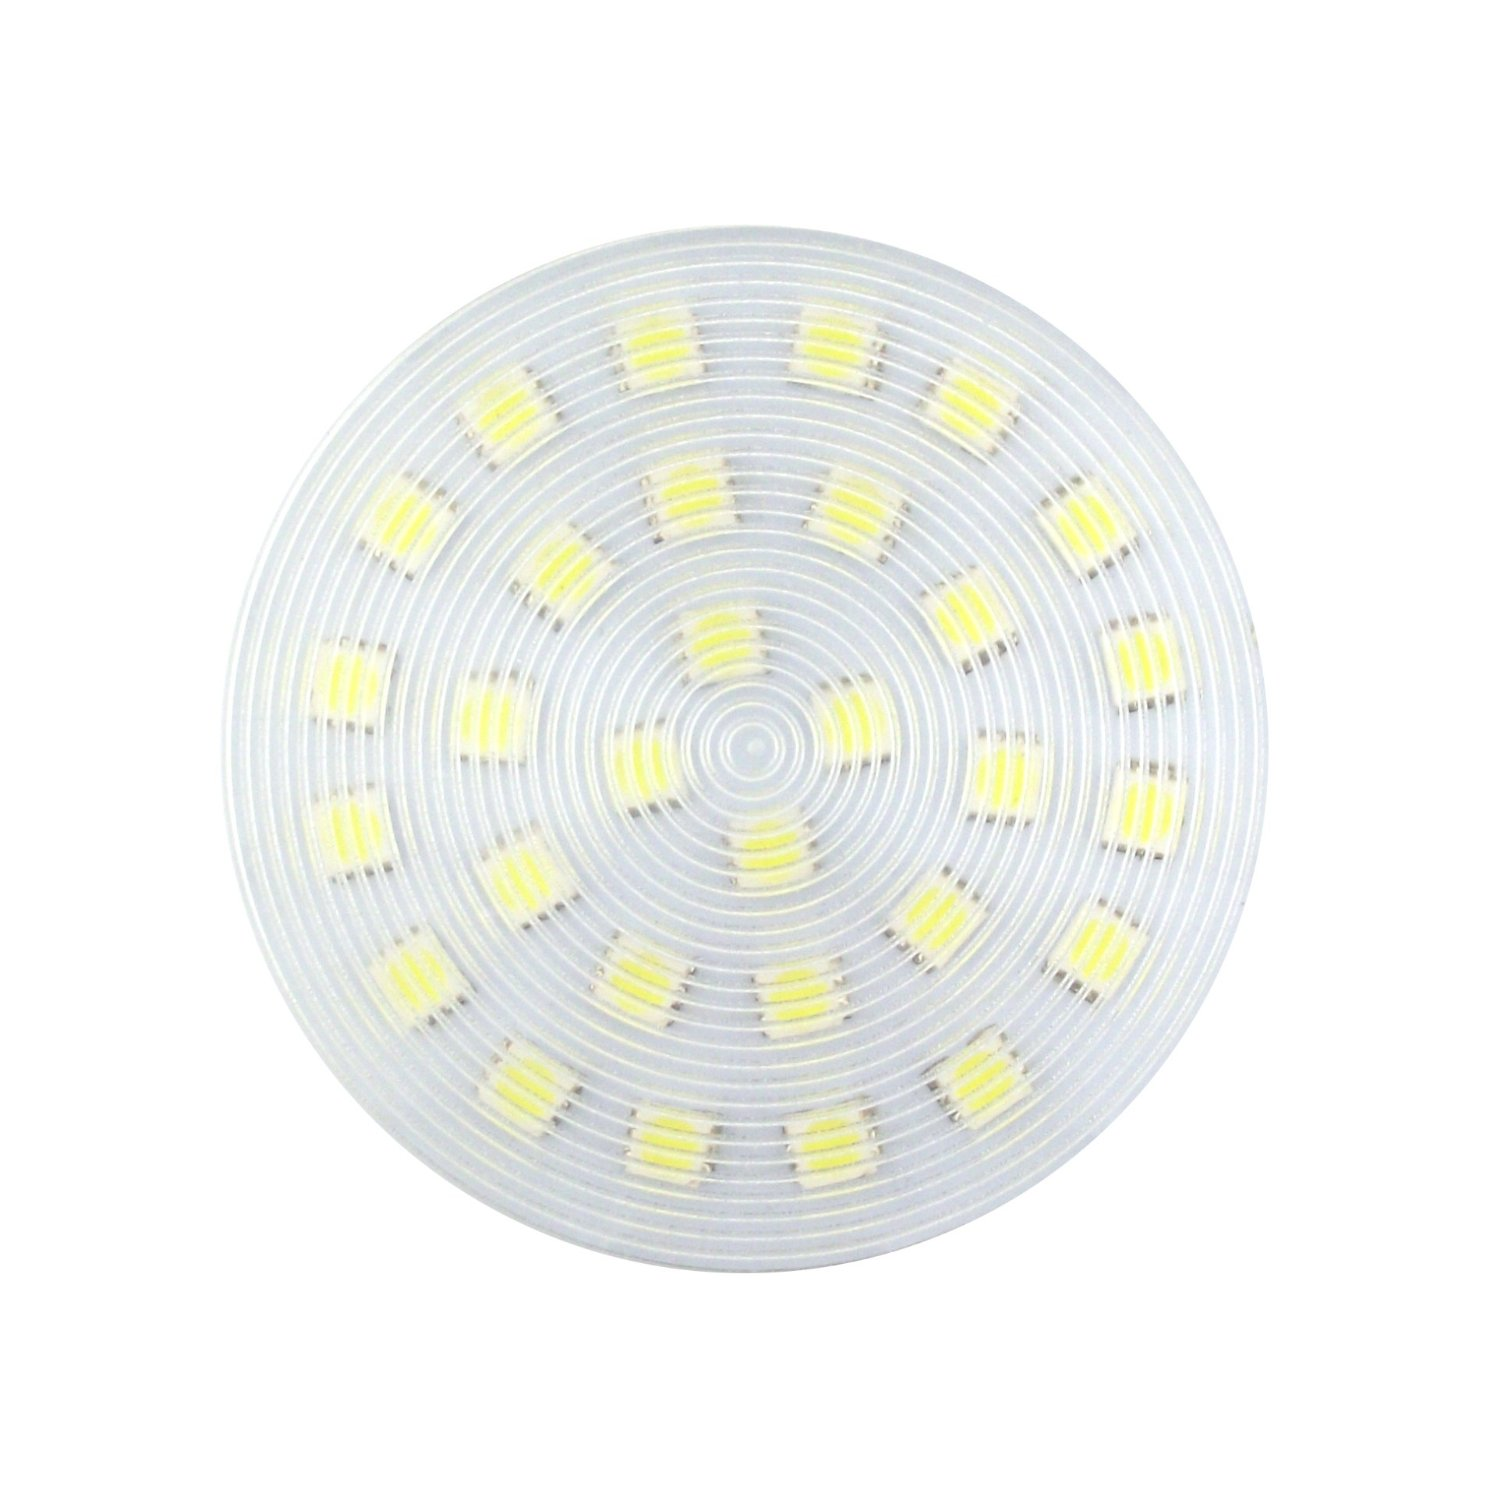 Bonlux Daylight 6000k Gx53 LED Bulb Ceiling Down Light Cabinet Lamp LED Puck Light for Gx53 CFL Bulb Replacement (7 Watts)